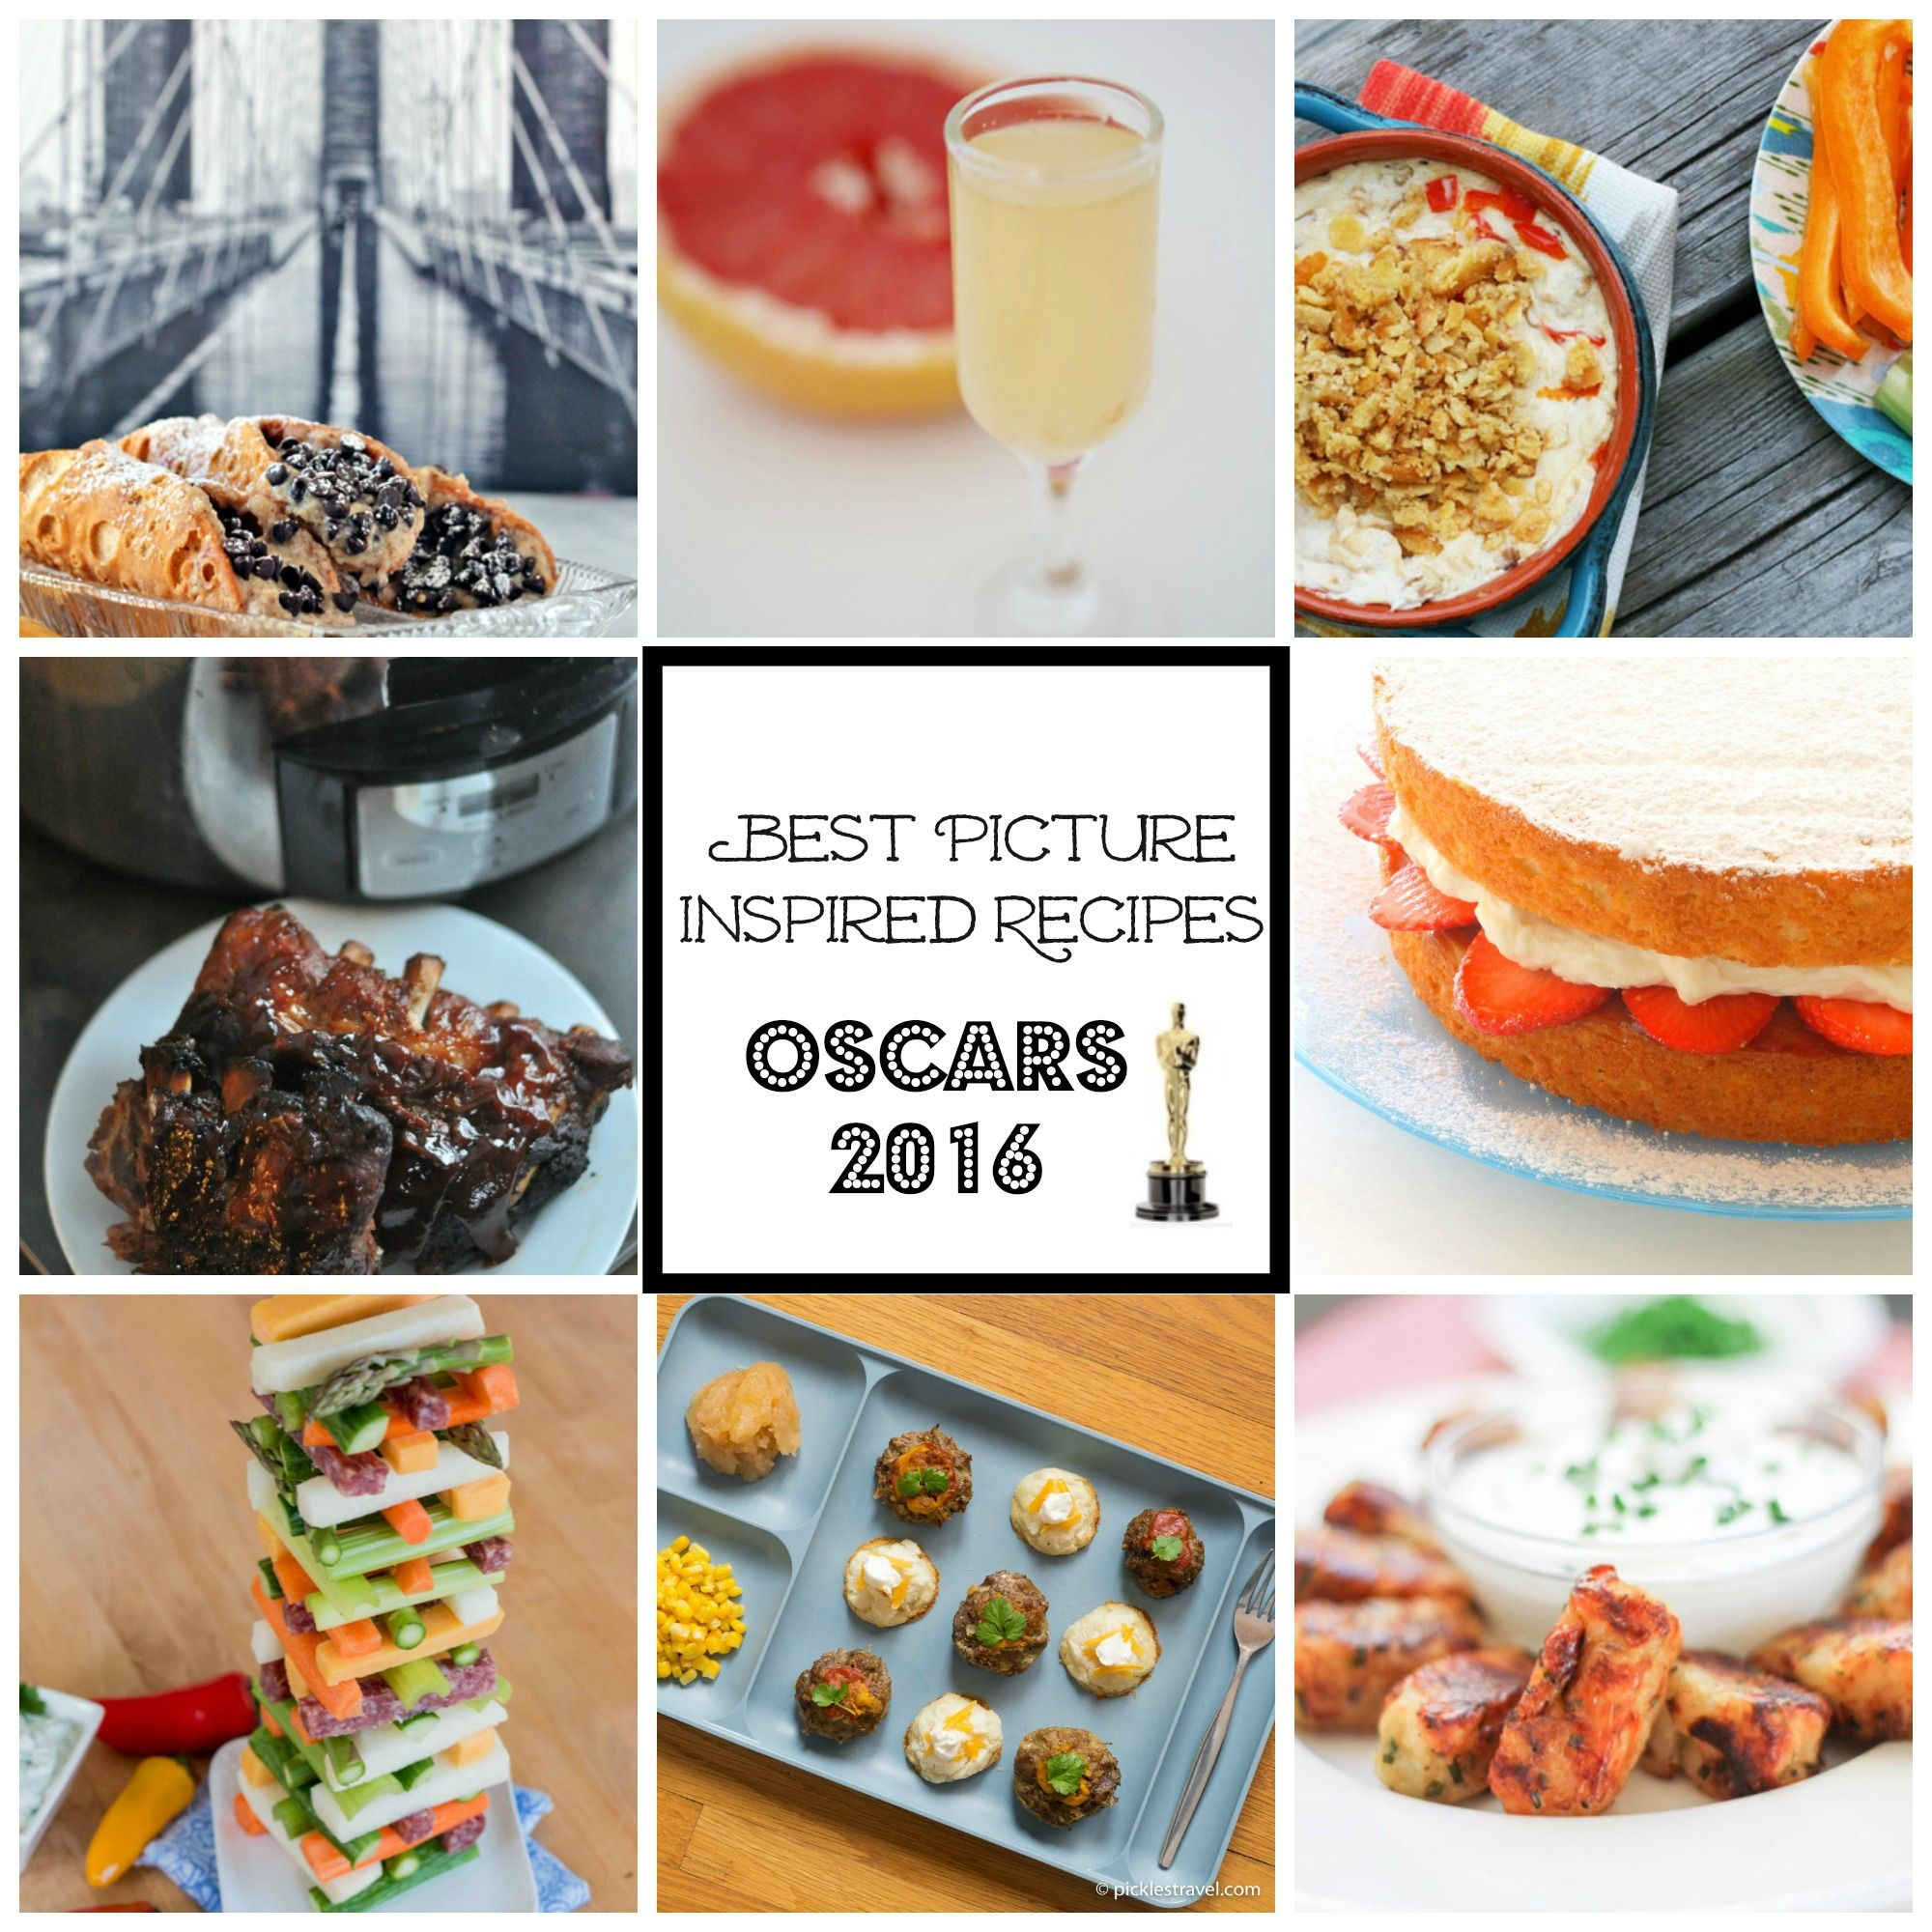 2016 Oscar Inspired Recipes